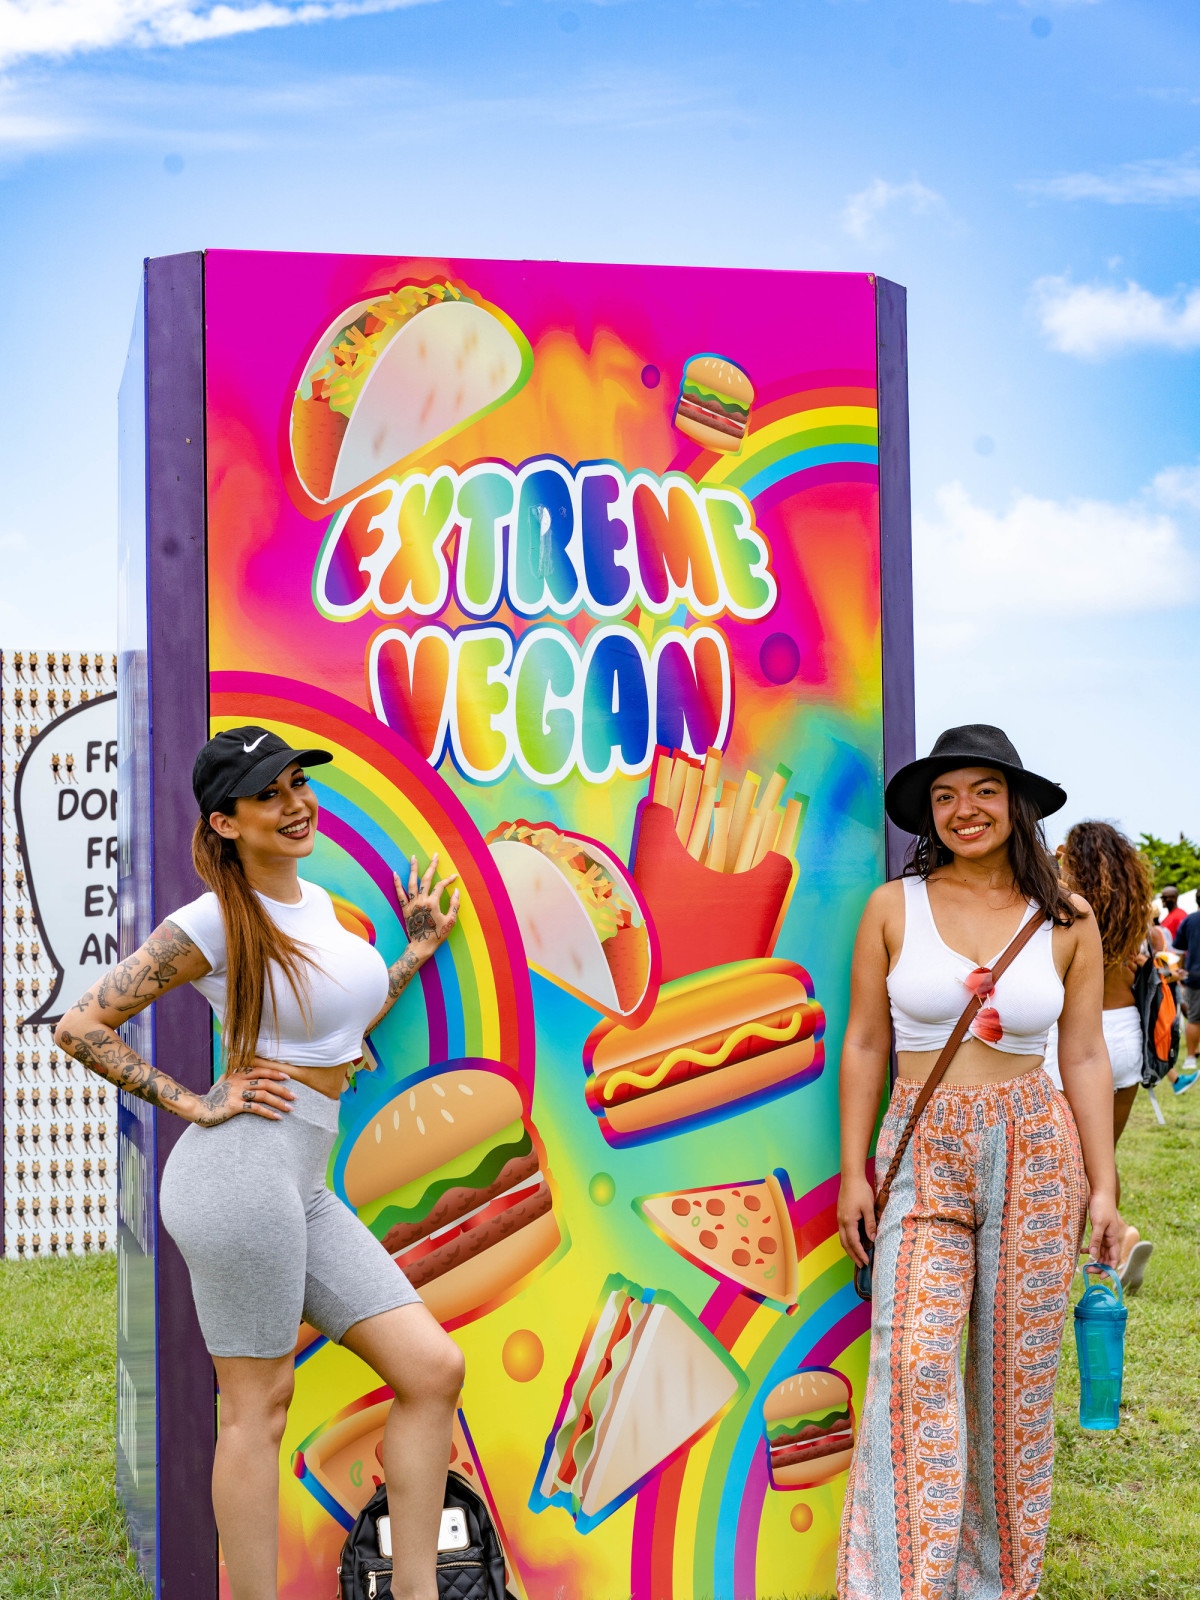 Massive vegan food festival sprouts up in downtown Houston ...